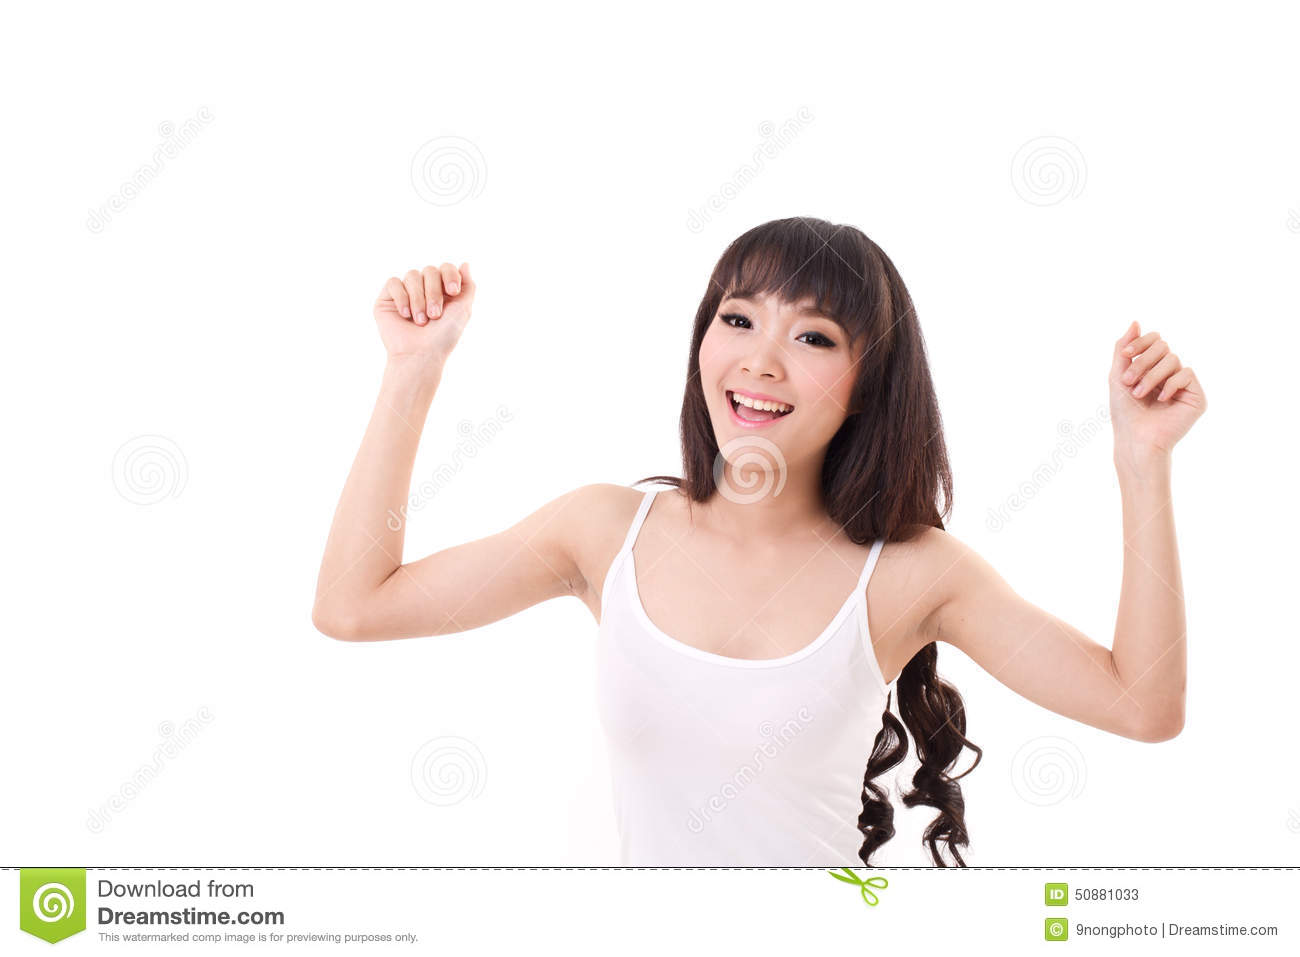 Download Exited, Happy, Smiling Woman Looking At You Or Camera Stock Image - Image of lady, cheerful: 50881033